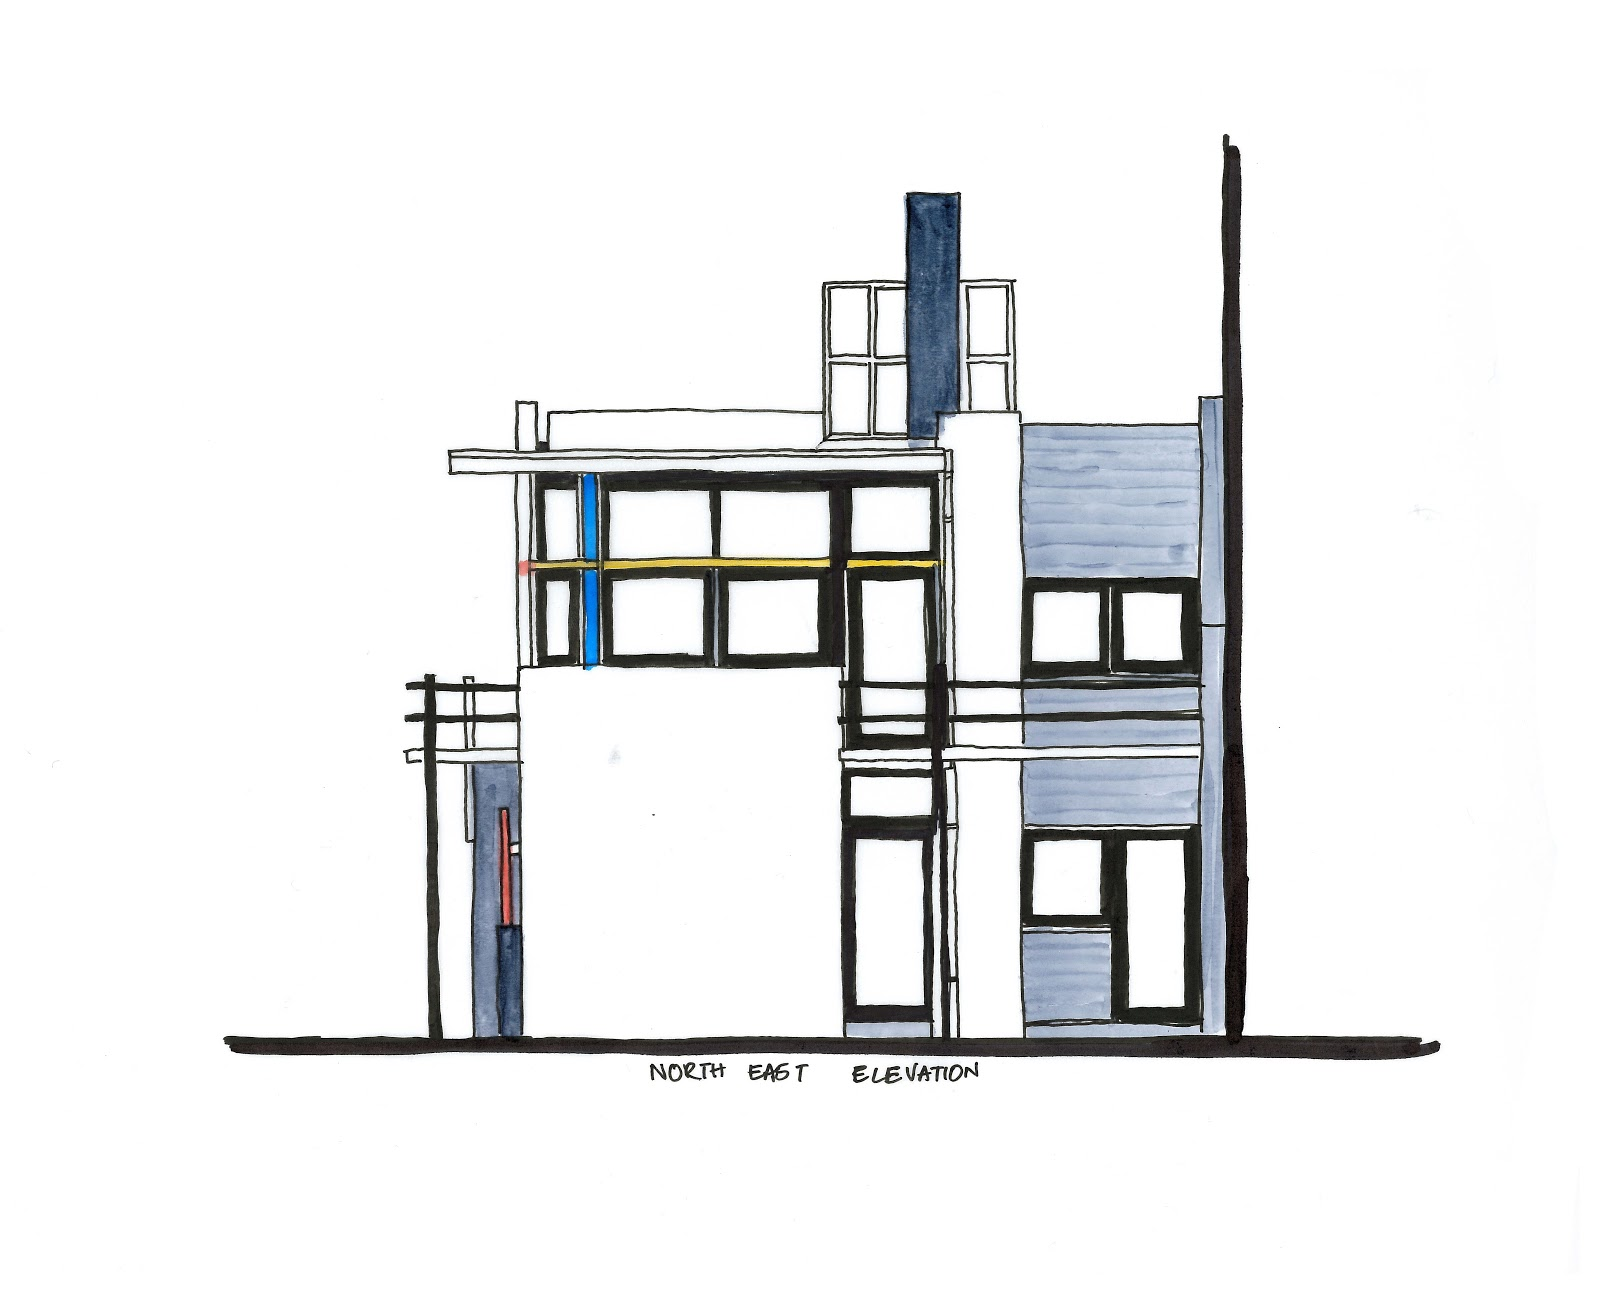 The Rietveld Schroder House Diagrams An In Depth Analysis Of The Design Of The Rietveld